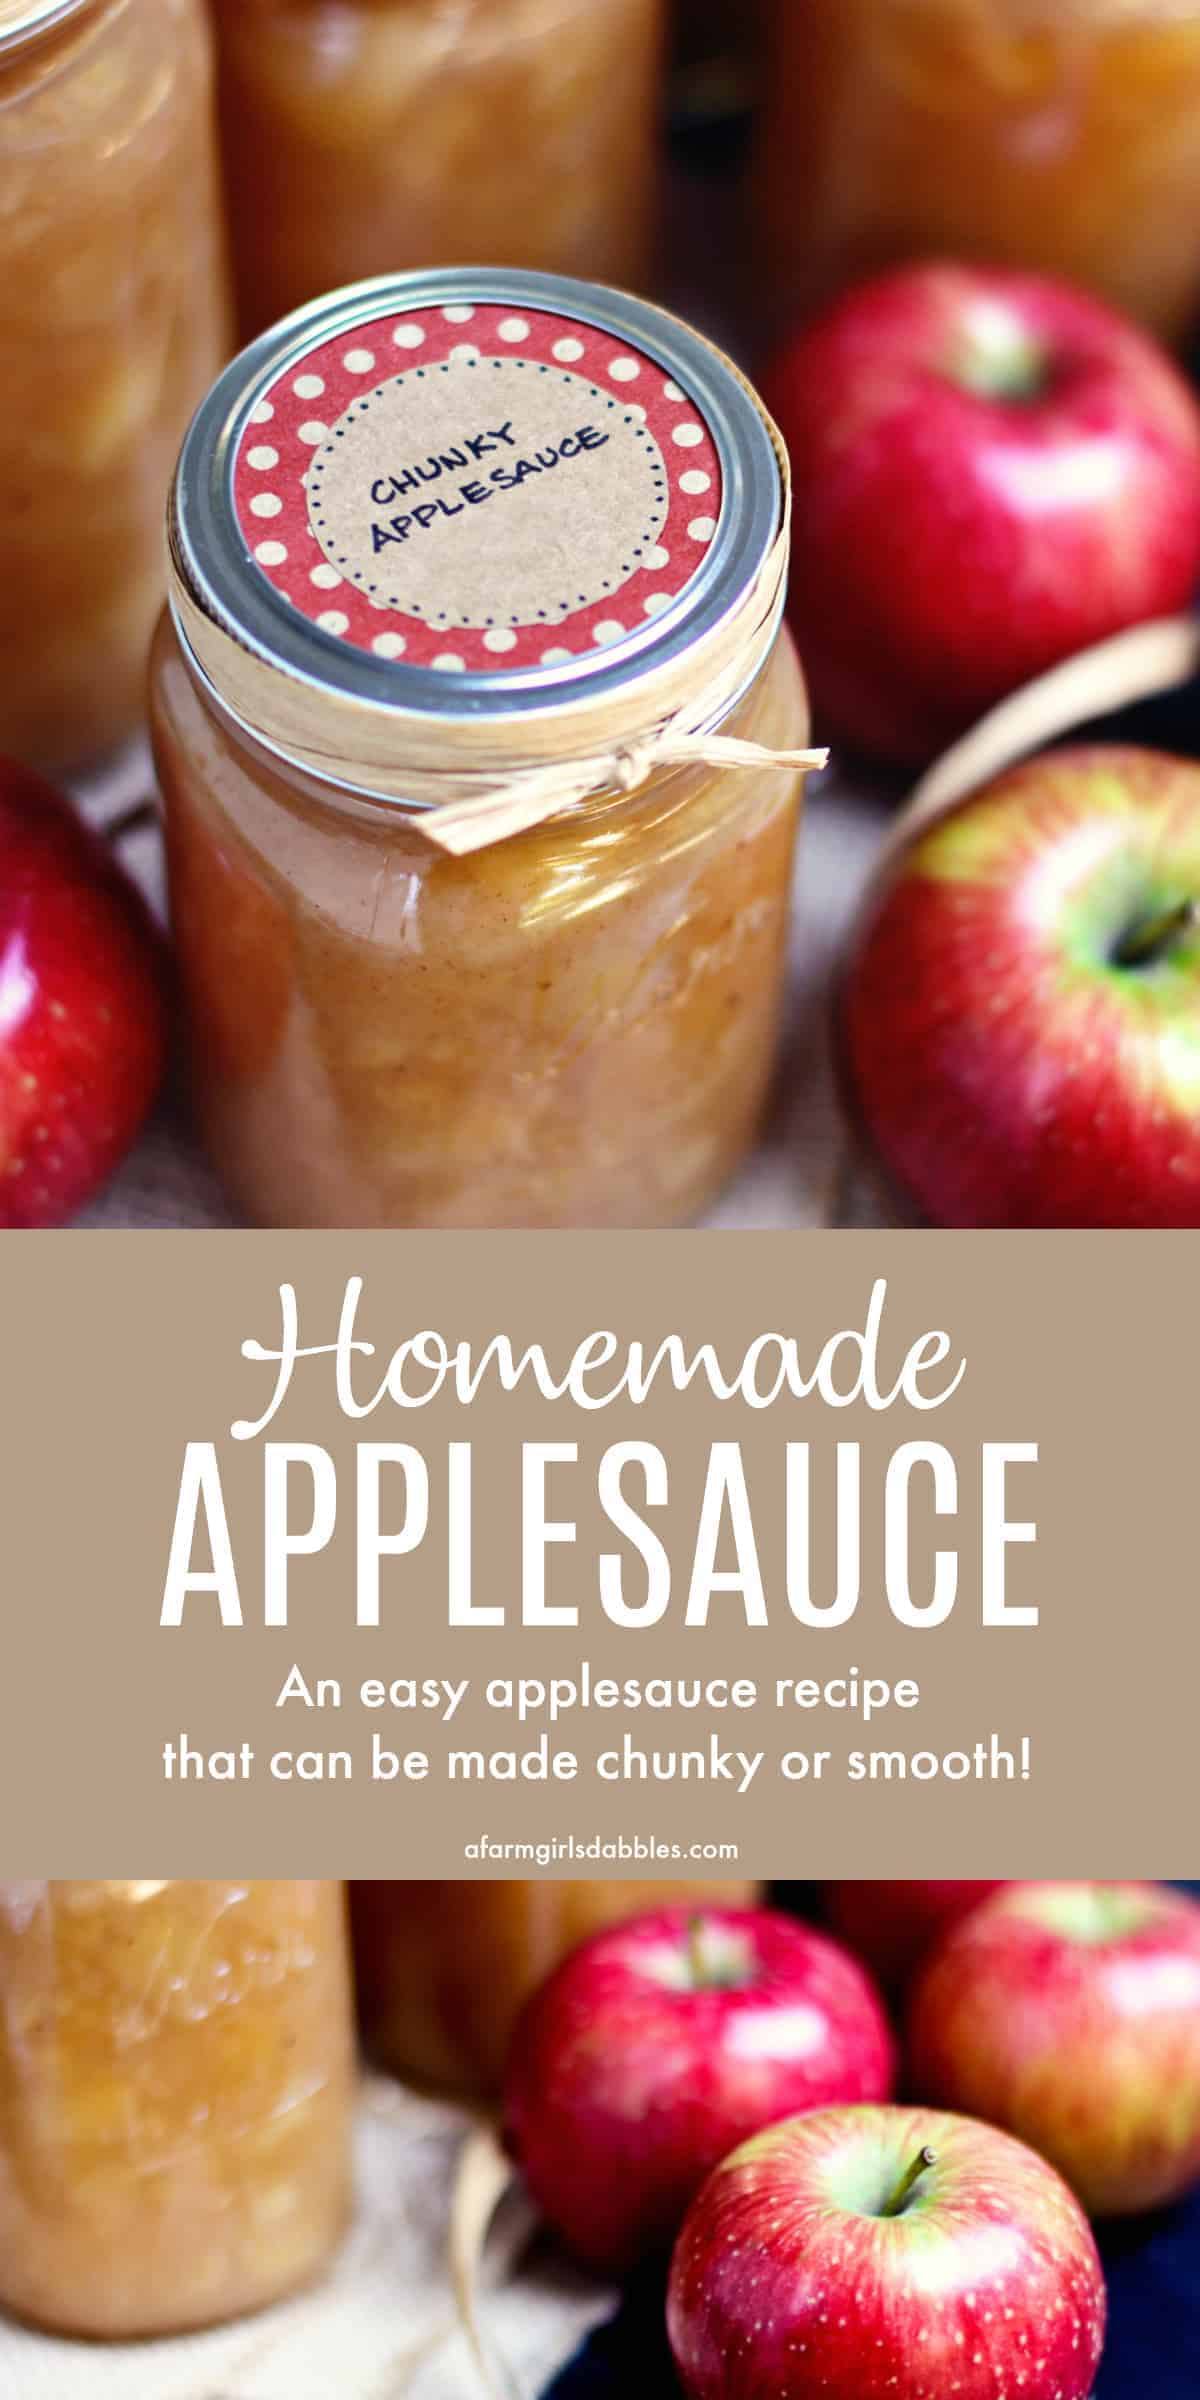 pinterest image of homemade applesauce in jars with apples